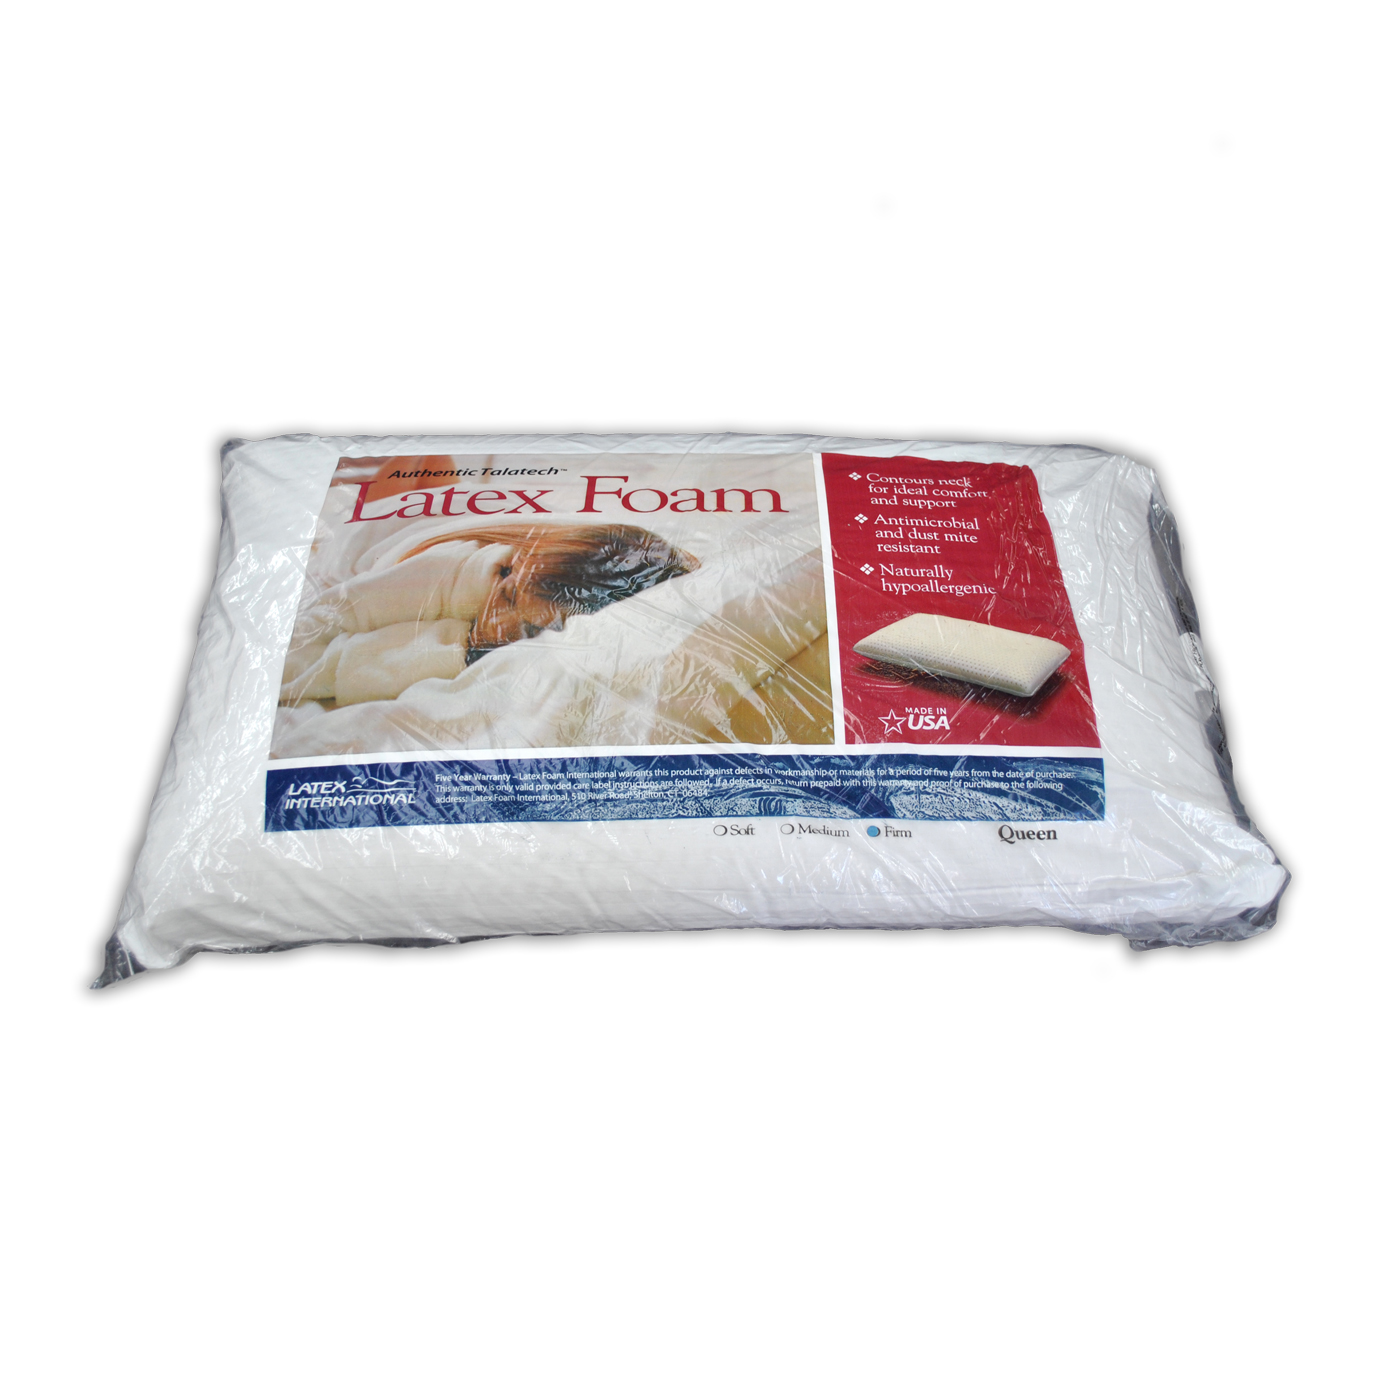 Latex Foam Pillow firm medium